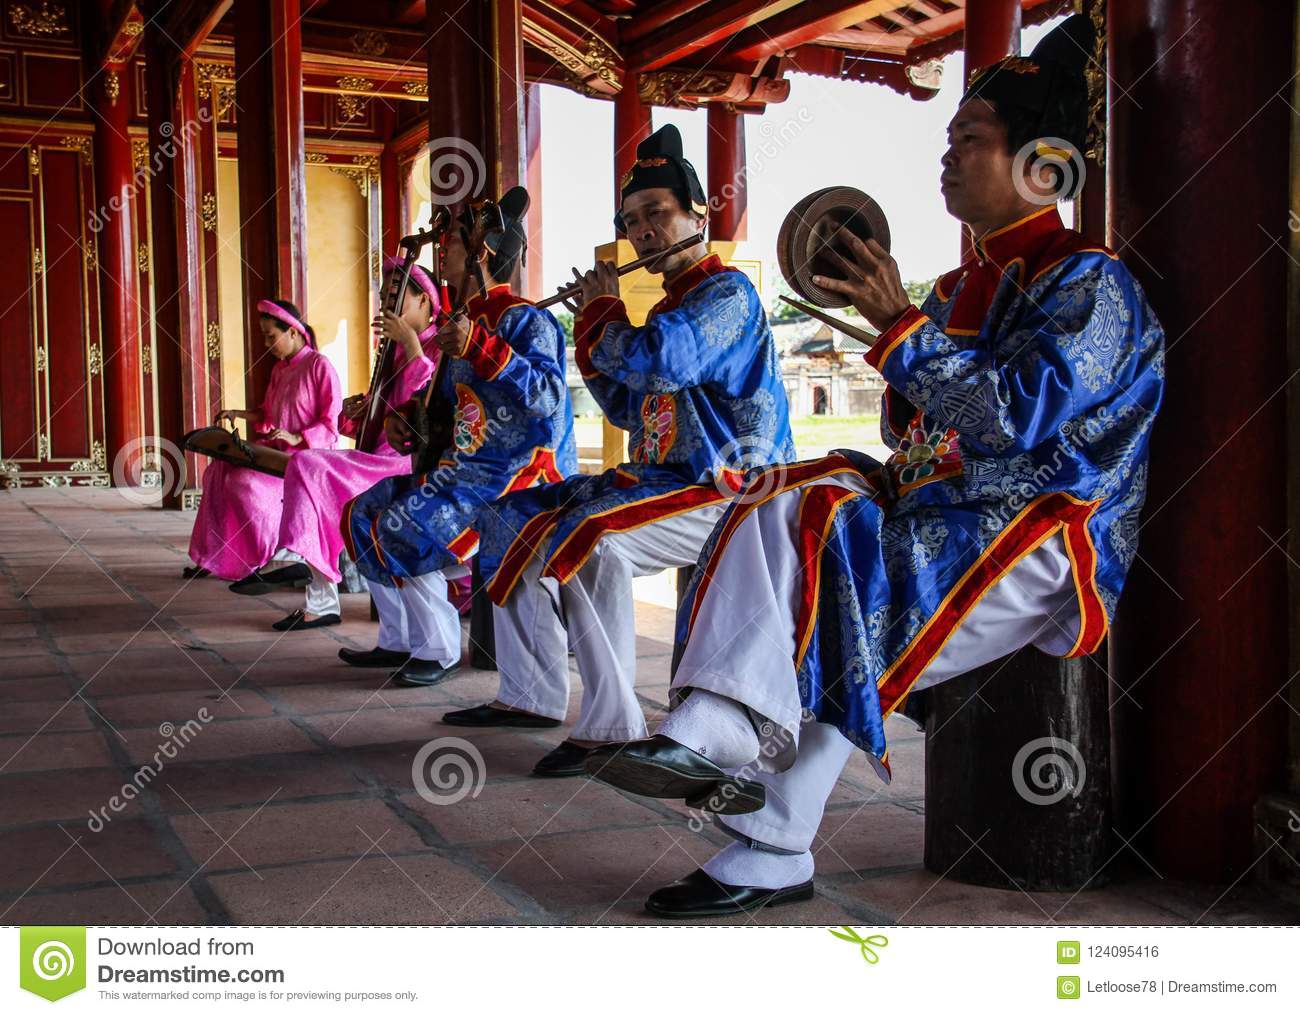 Traditional music players in the Imperial City of Hue, Thua Thien-Hue, Hue, Vietnam